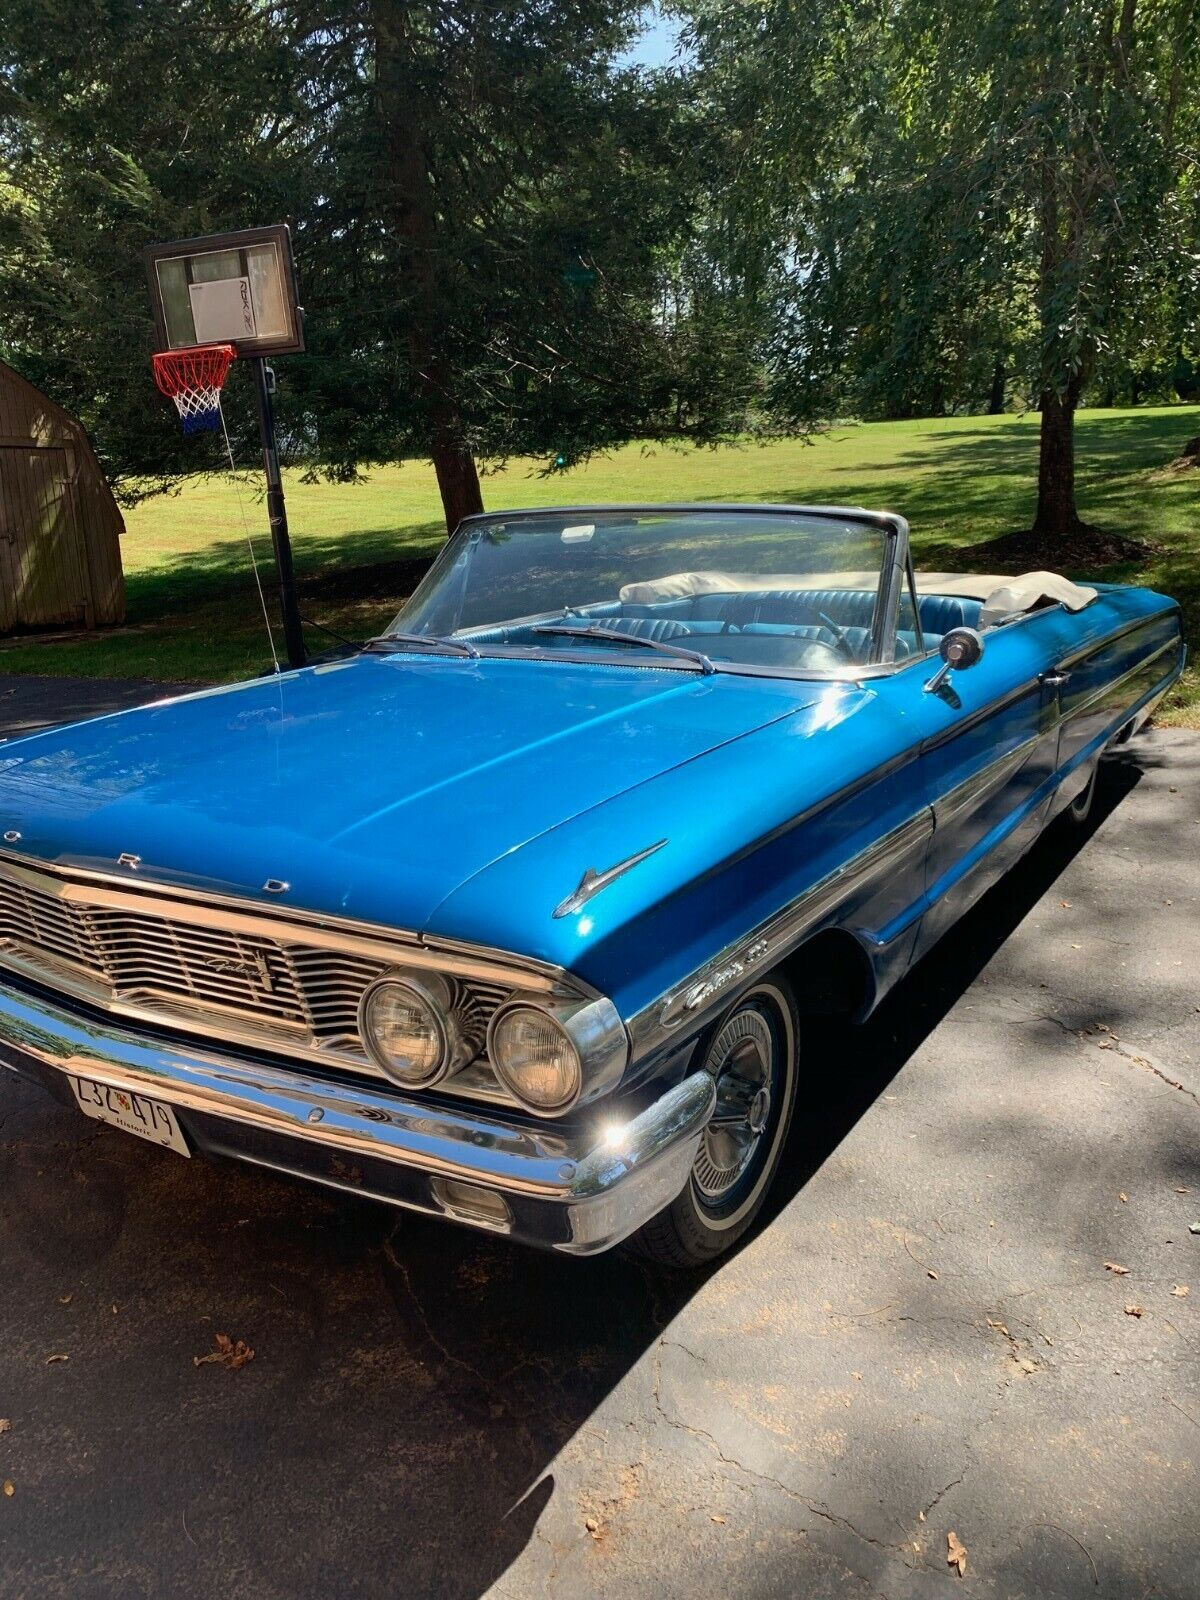 1964 Ford Galaxie  289 V-8 with rebuilt transmission, carburetor, new convertible top motor, beauty